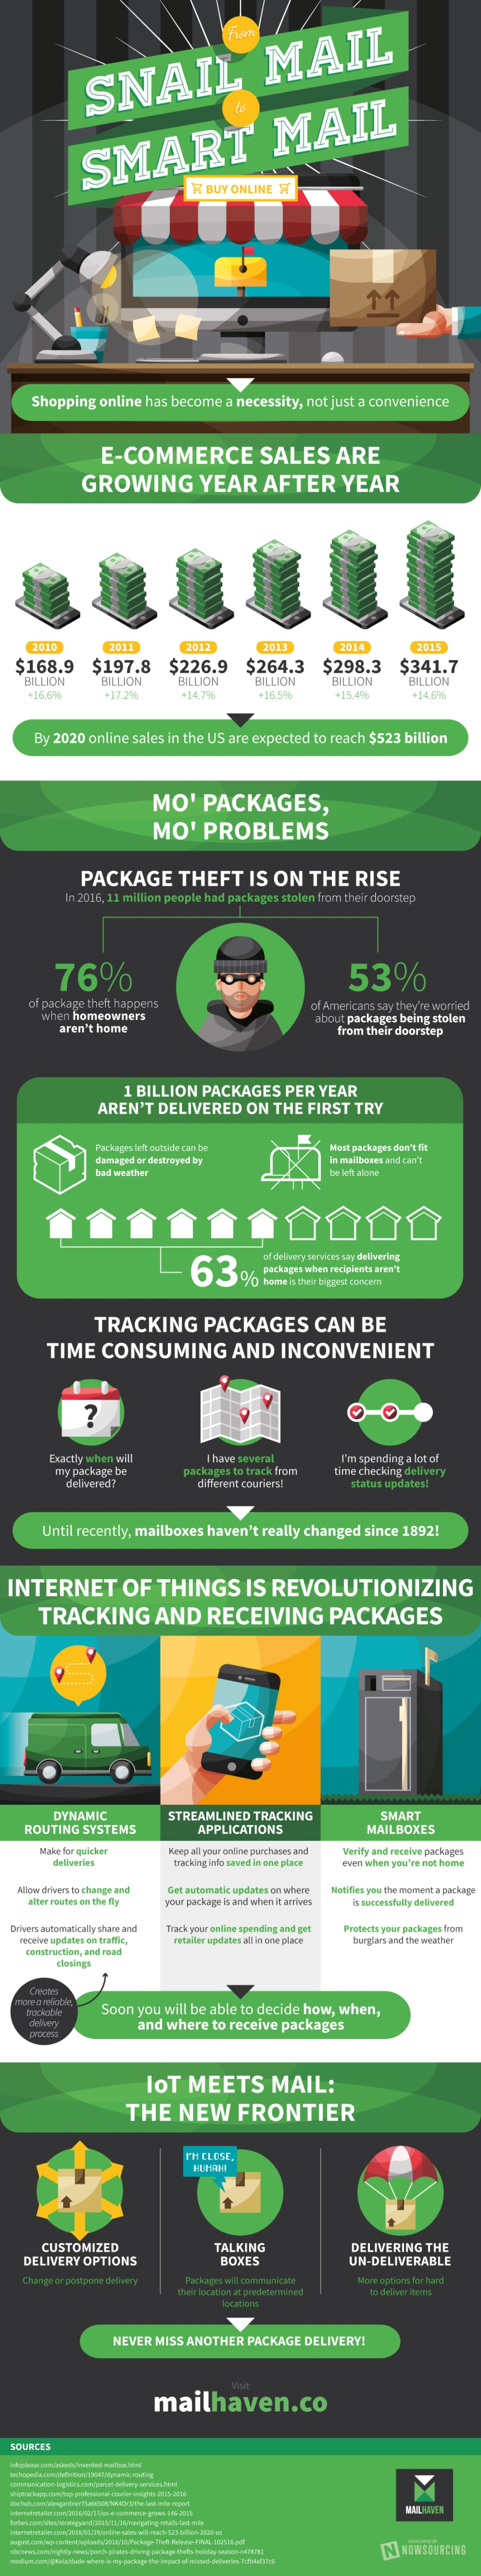 Shopping online has become a necessity, not just a convenience  E-COMMERCE SALES ARE GROWING YEAR AFTER YEAR  seul  $168.9 $197.8 $226.9 $264.3 $298.3 $341.7 BILLION BILLION BILLION BILLION BILLION BILLION  By 2020 online sales in the US are expected to reach $523 billion  MO' PACKAGES, MO' PROBLEMS     PACKAGE THEFT IS ON THE RISE  =O gg? ¢ Ae 7 BET E14 € IIH GFE GIT) aren't home LCR GTI LTTE TT)  1 BILLION PACKAGES PER YEAR AREN'T DELIVERED ON THE FIRST TRY  Packages left outside can be Most packages don't fit LIL PPT RI TEI 1 in mailboxes and can't bad weather LE FI  LAR KR ANARREA  of delivery services say delivering 0, packages when recipients aren't Yo home is their biggest concern  TRACKING PACKAGES CAN BE TIME CONSUMING AND INCONVENIENT  [3FTa(Y ll [LFS m spending a lot of  EEE eh time checking delivered? different couriers  Until recently, mailboxes haven't really changed since 1892!  INTERNET OF THINGS IS REVOLUTIONIZING TRACKING AND RECEIVING PACKAGES     : ) i   © 4 ALL RU NT30R g Te FLL ROUTING SYSTEMS APPLICATIONS MAILBOXES  Keep all your online purchases and Verify and receiv tracking info saved in one place even when you're  Allow drivers to change and Get automatic updates on where Notifies you the moment a package alter routes on the fly your package is and when it arrives s successfully delivered h( ur online spending and get packages from r updates all in one place the weather  Soon you will be able to decide how, when, and where to receive packages     N13 RN (LT THE NEW FRONTIER  [GLO use  we  CUSTOMIZED RVR] Te] DELIVERING THE DELIVERY OPTIONS BOXES UN-DELIVERABLE  NEVER MISS ANOTHER PACKAGE DELIVERY!  SOURCES  J JL Tat ep  Be] N/ J or pp  och com lengardaes TS IASI NIA The Lat me report  Inter etates com/201602/1T vs © Commerce gr LL     hdmi rial ay Je Bee Package Theft Release FINAL 102516 pst smoven or el foes epee AN LITE  J a ET Se PP PA RY